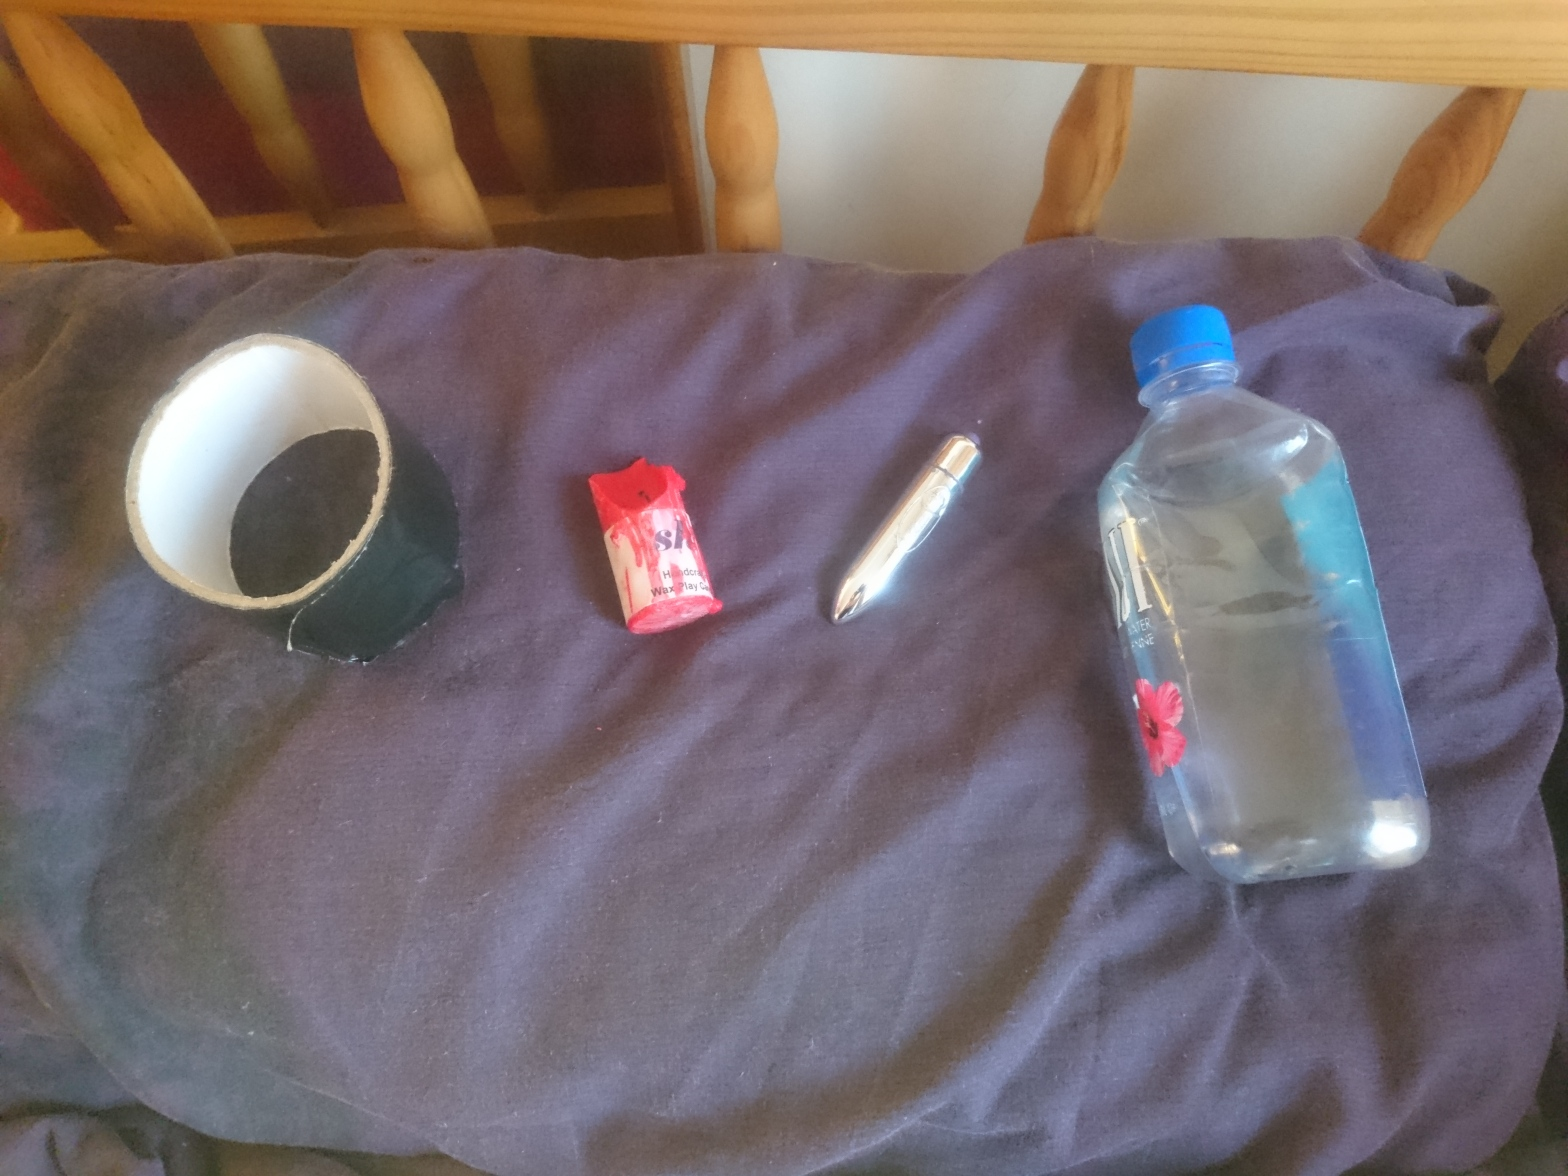 Picture of duct tape, candle, vibrator, and bottle of water